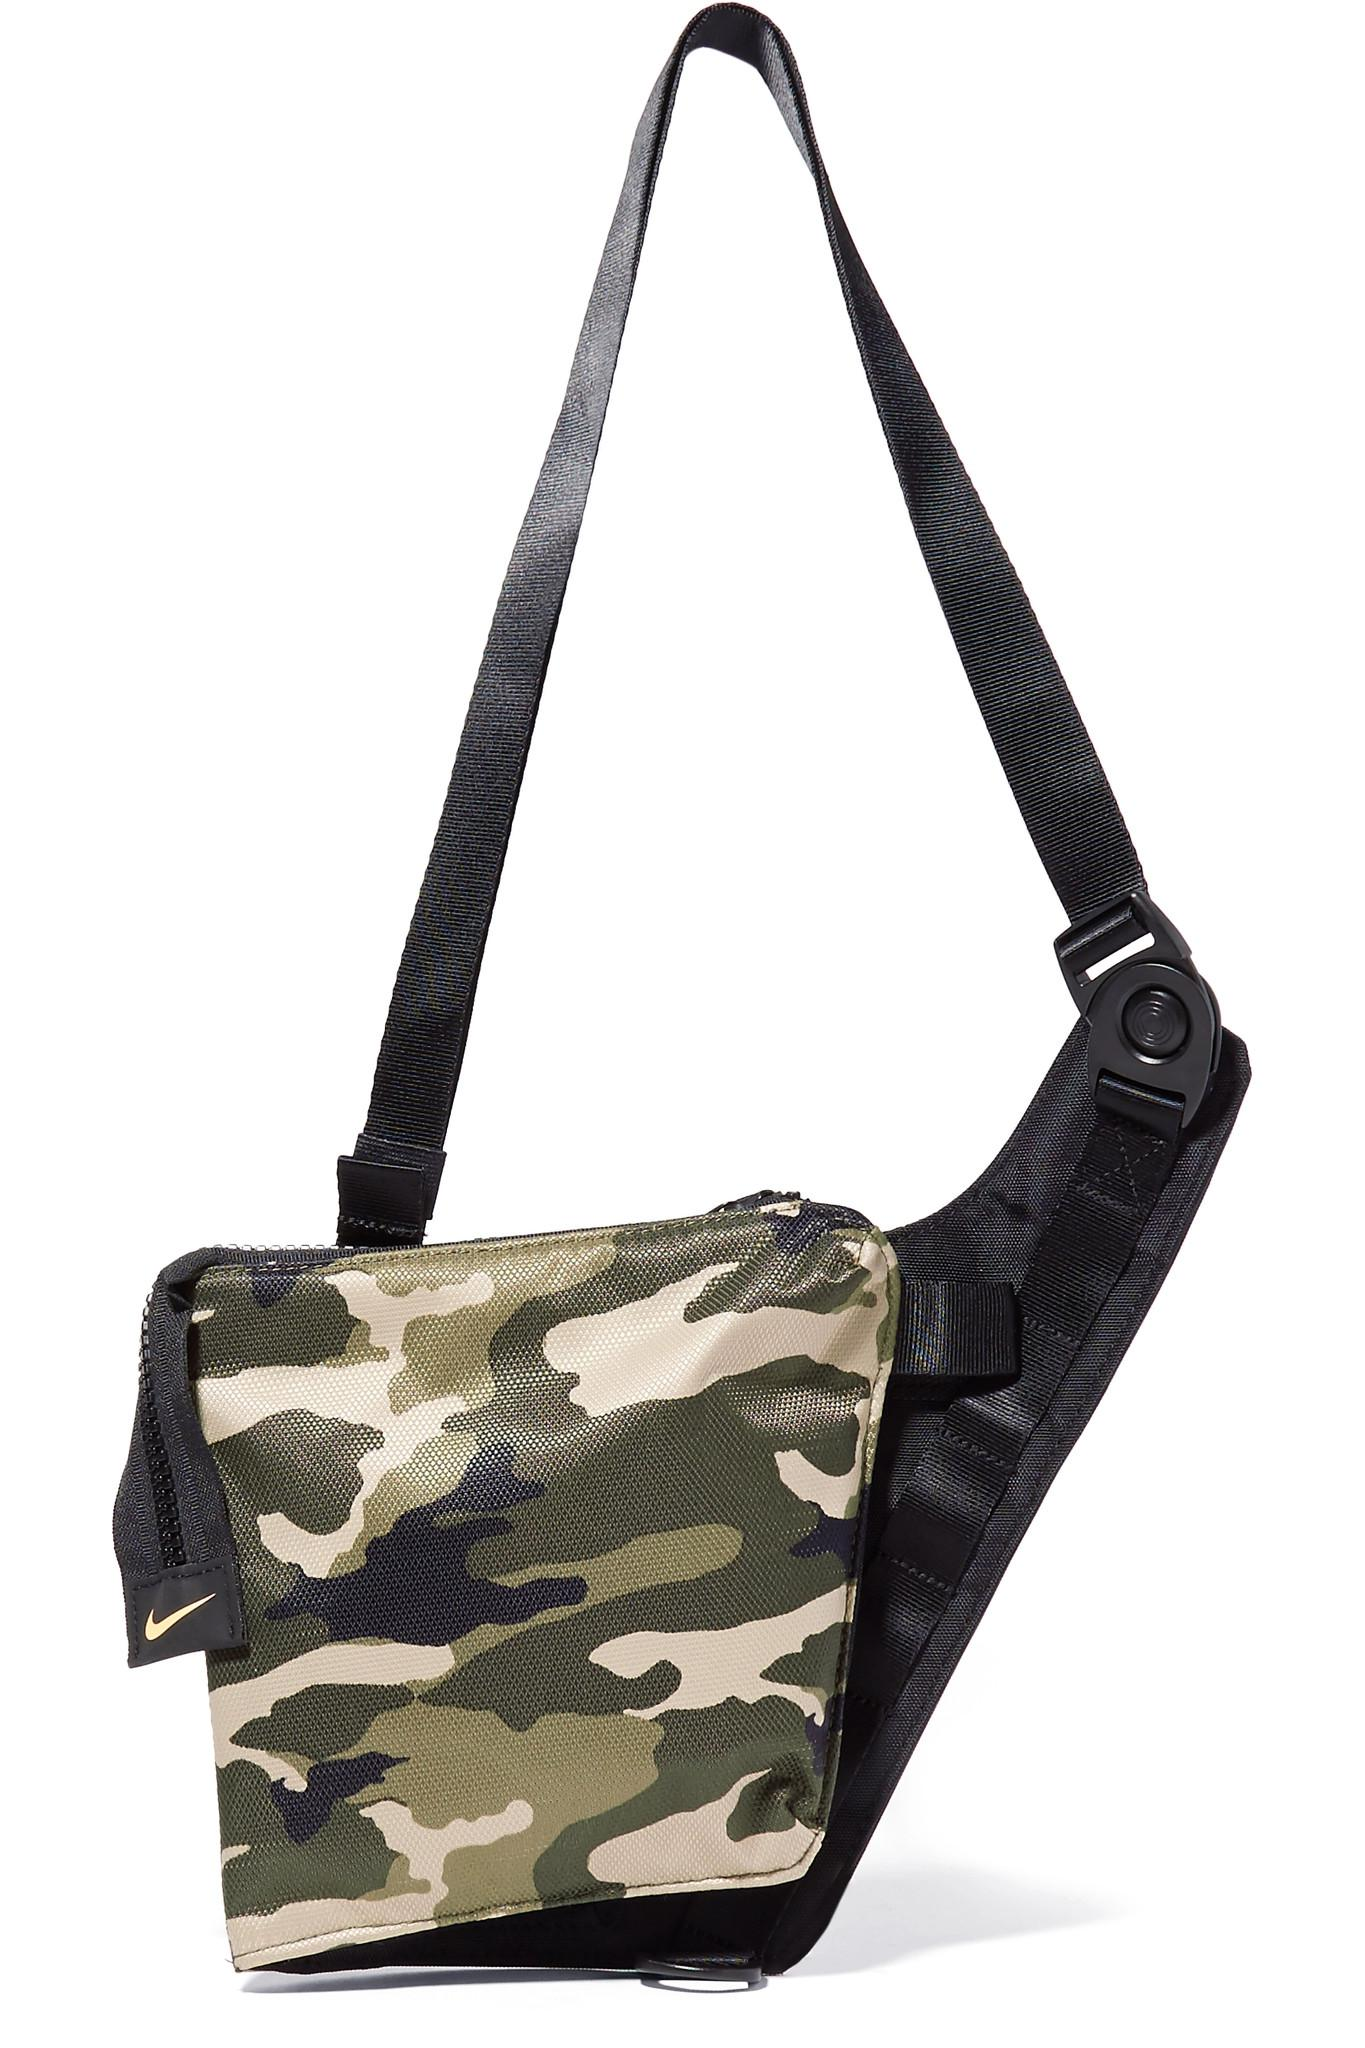 a9ca7515011f3c Lyst - Nike Air Max Camouflage-print Shell Bag in Black